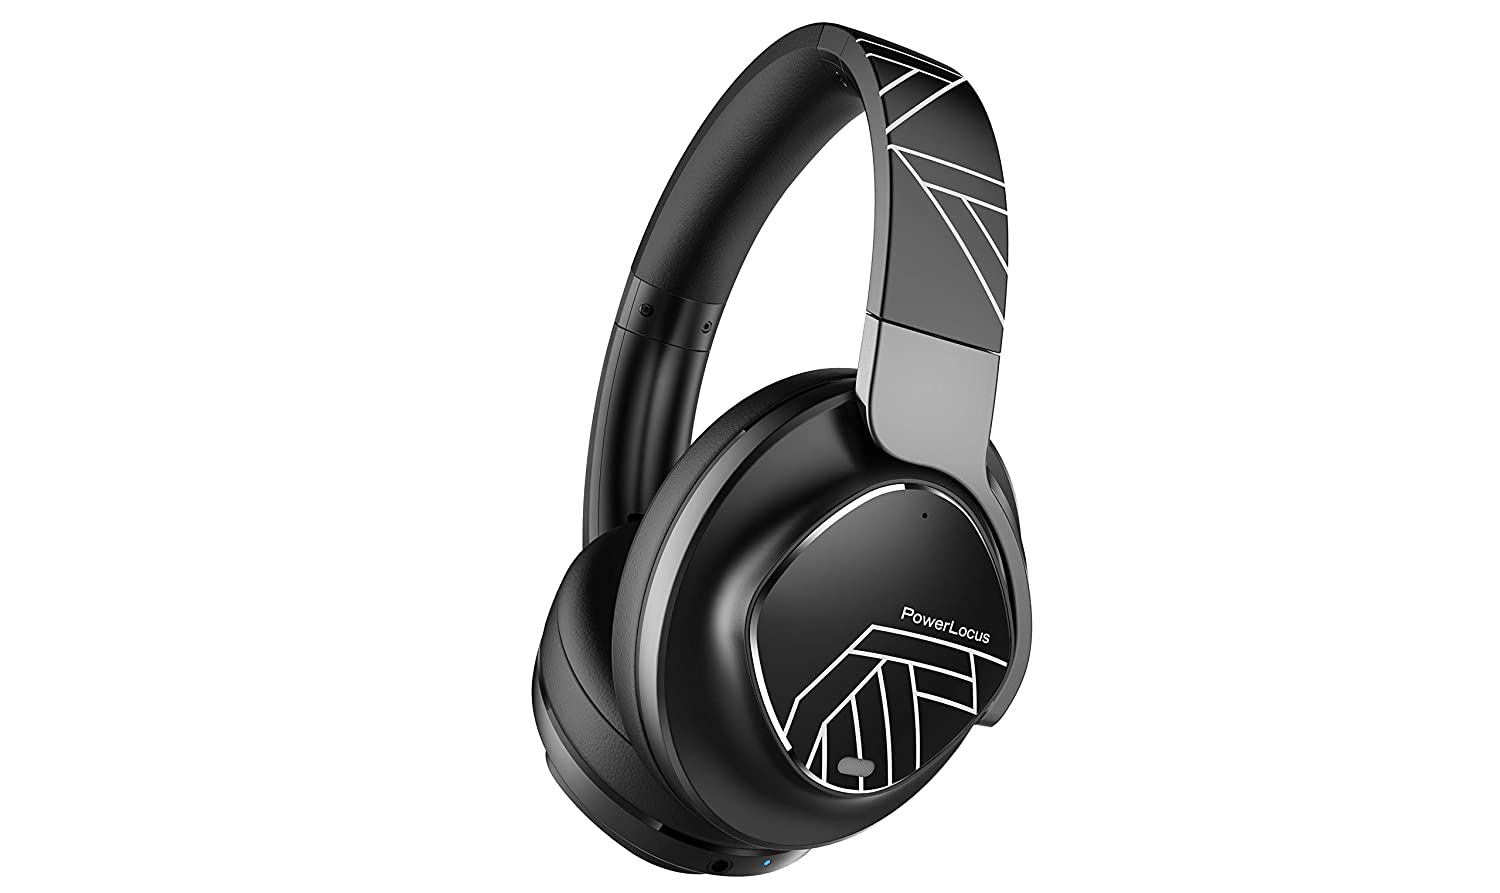 PowerLocus Active Noise Cancelling Headphones, Bluetooth Over-Ear Headphones with Noise Reduction, Wireless Headphones, Hi-Fi Deep Bass, Voice Assistant, Foldable with Microphone for Phones/Laptops/PC